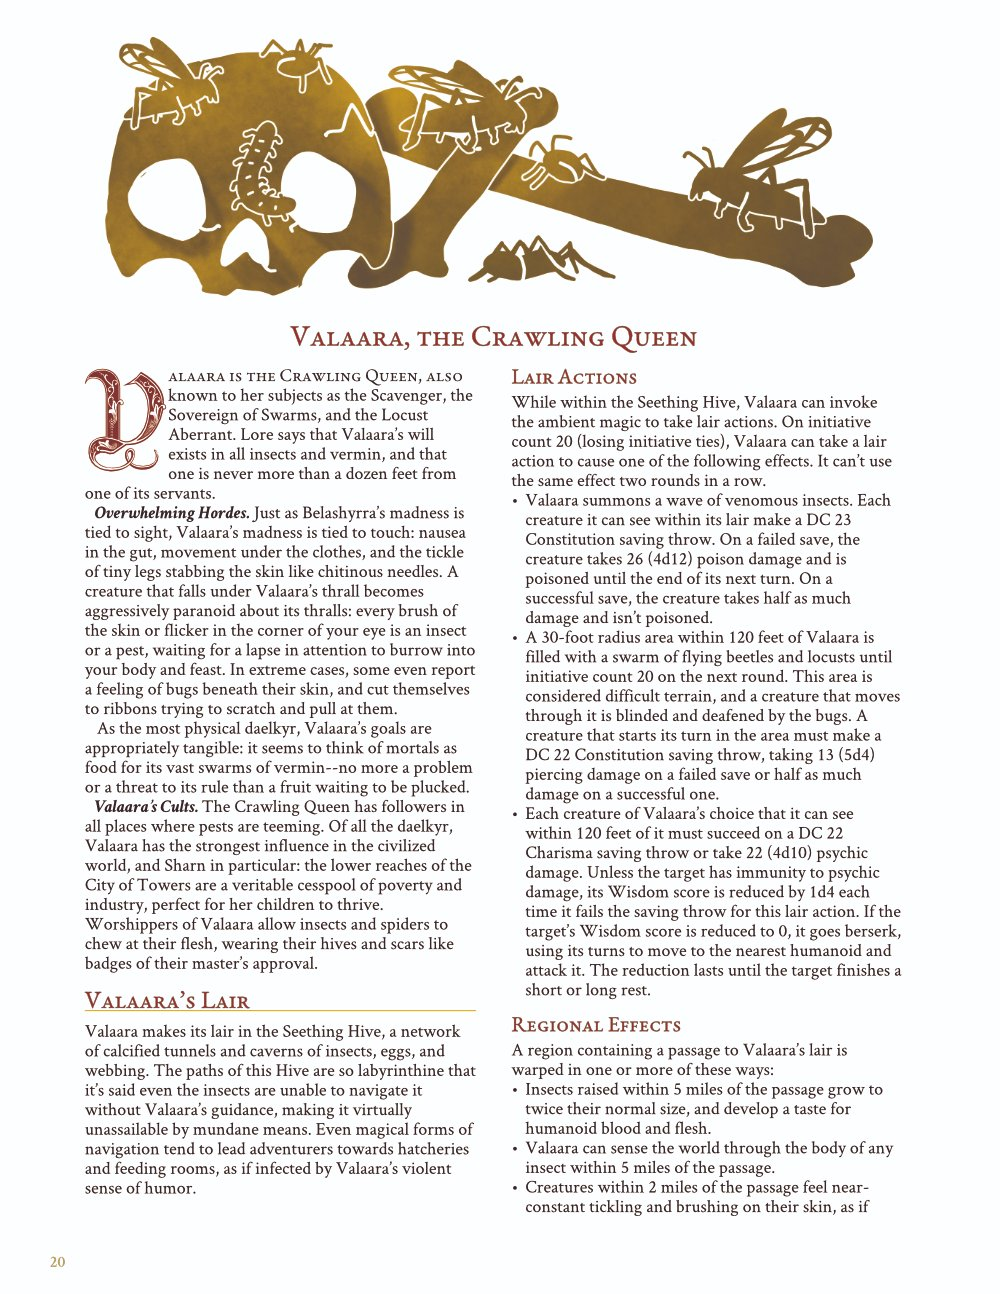 Valaara, the Crawling Queen, printer friendly layout